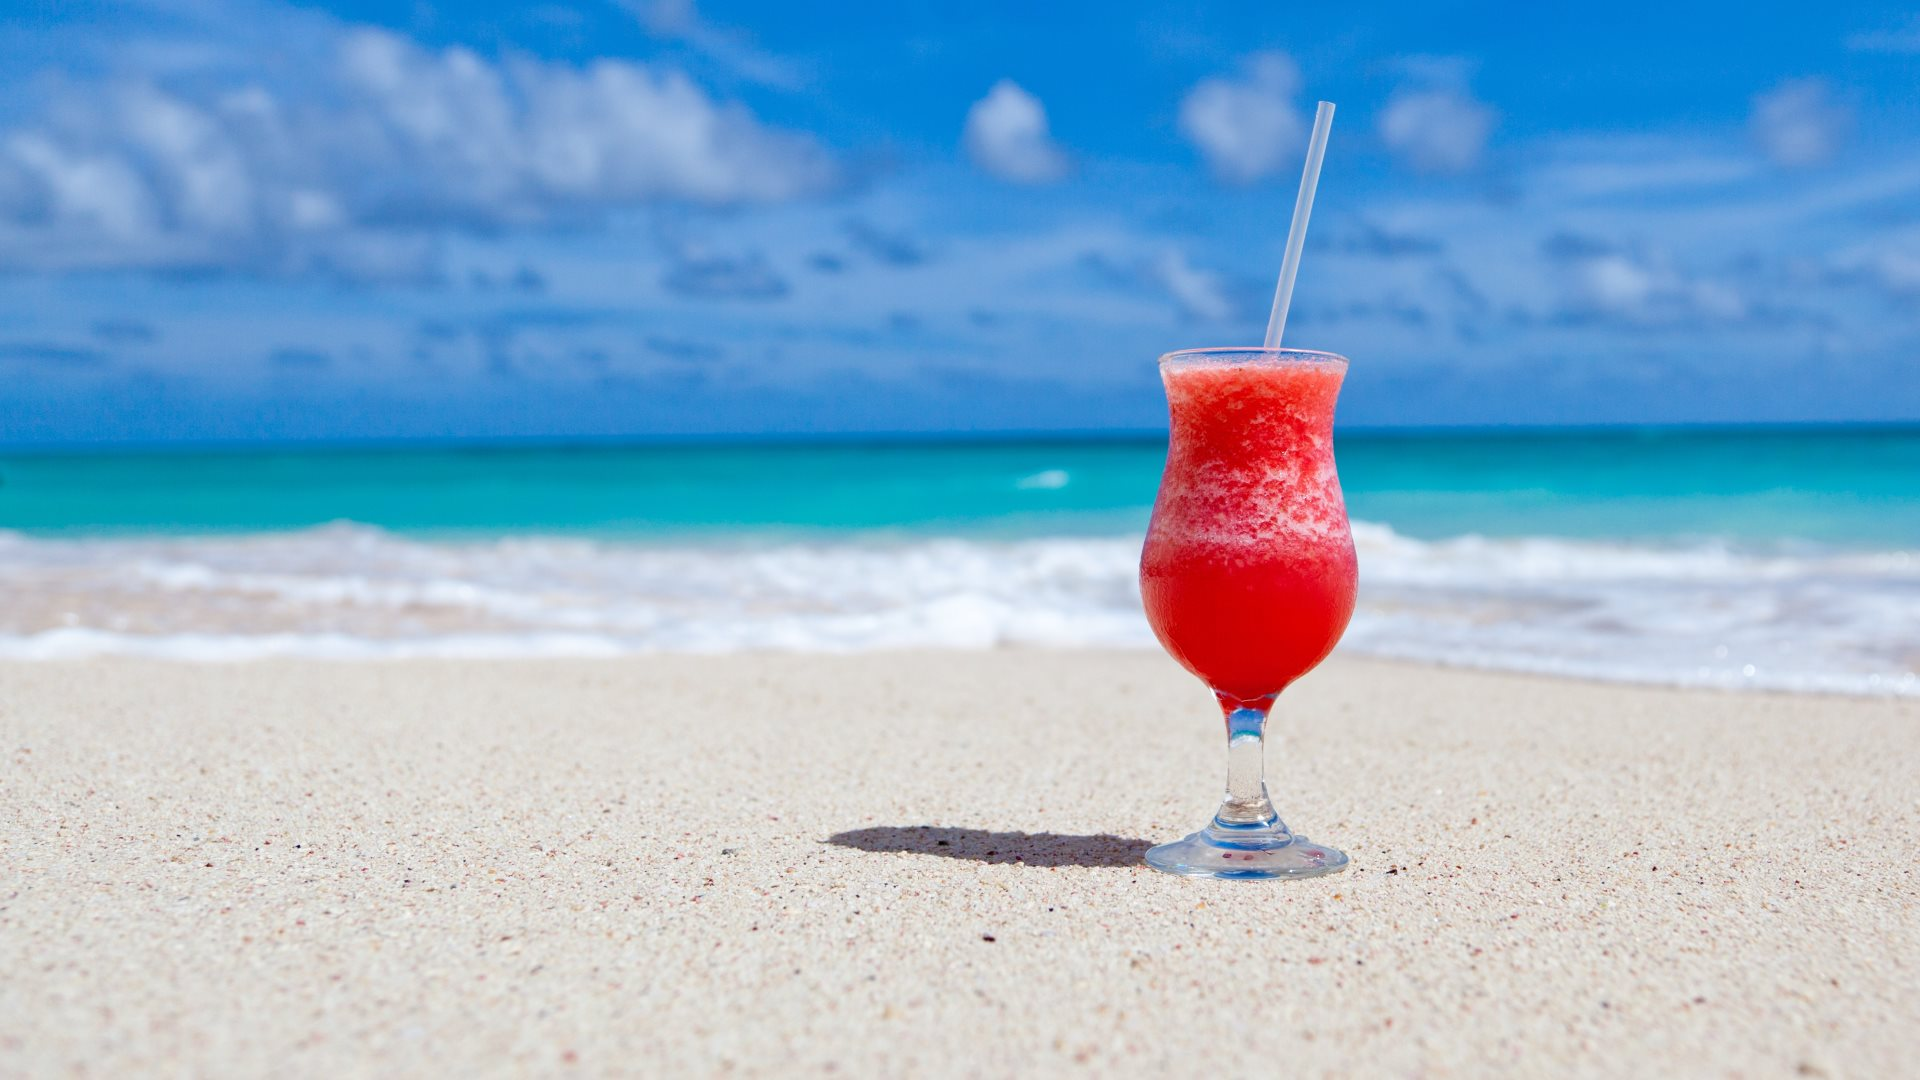 Cocktail Caribbean Beach HD Wallpaper   HD Wallpapers 1920x1080